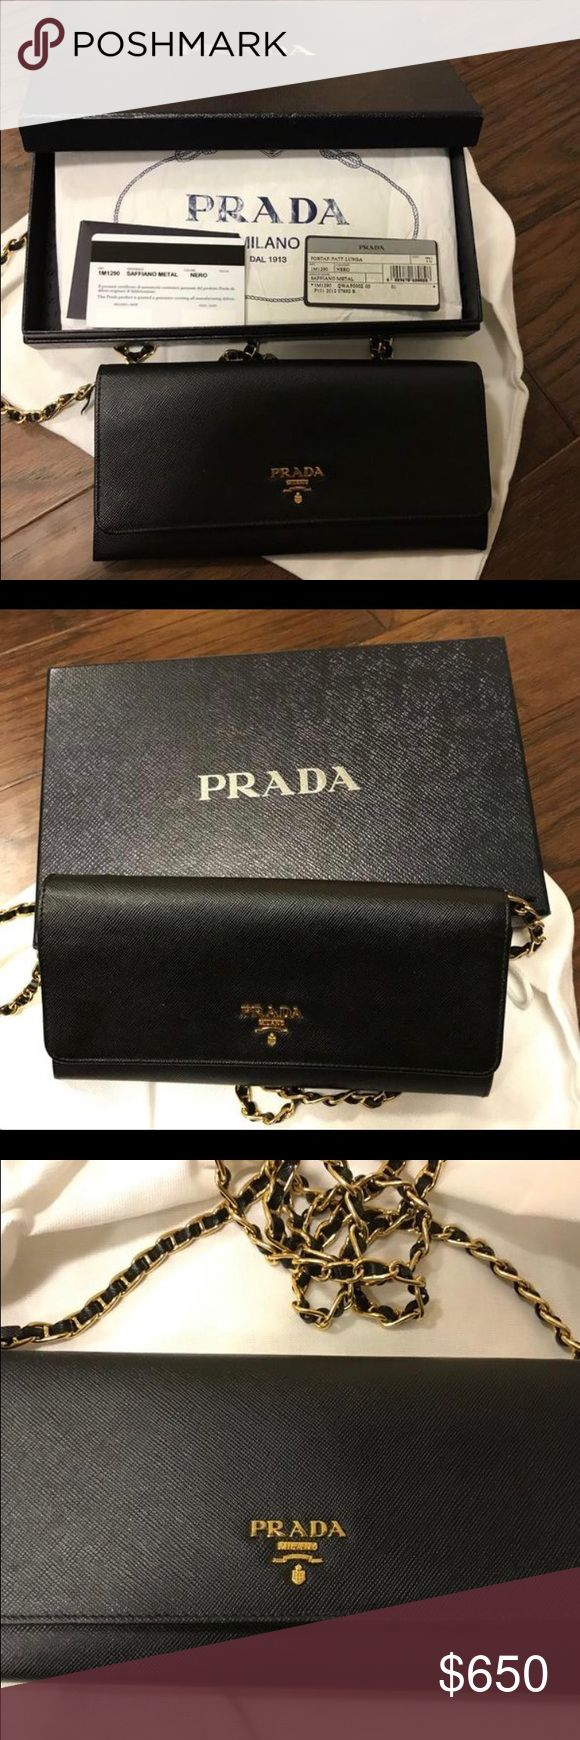 Prada Black Saffiano Wallet on Chain Black Prada Wallet on Chain- in great condition except near ends of chain (see last two photos) on both sides of the purse. Can be easily fixed with glue or stitch. You can also buy new chain at Prada for $135. Actual chains are still in tact, so you don't have to worry about chain falling off.   Gold tone hardware. Removable chain so you can use as wallet or clutch. Comes with box and authenticity card. New bag currently retails at $875 + tax at Saks…